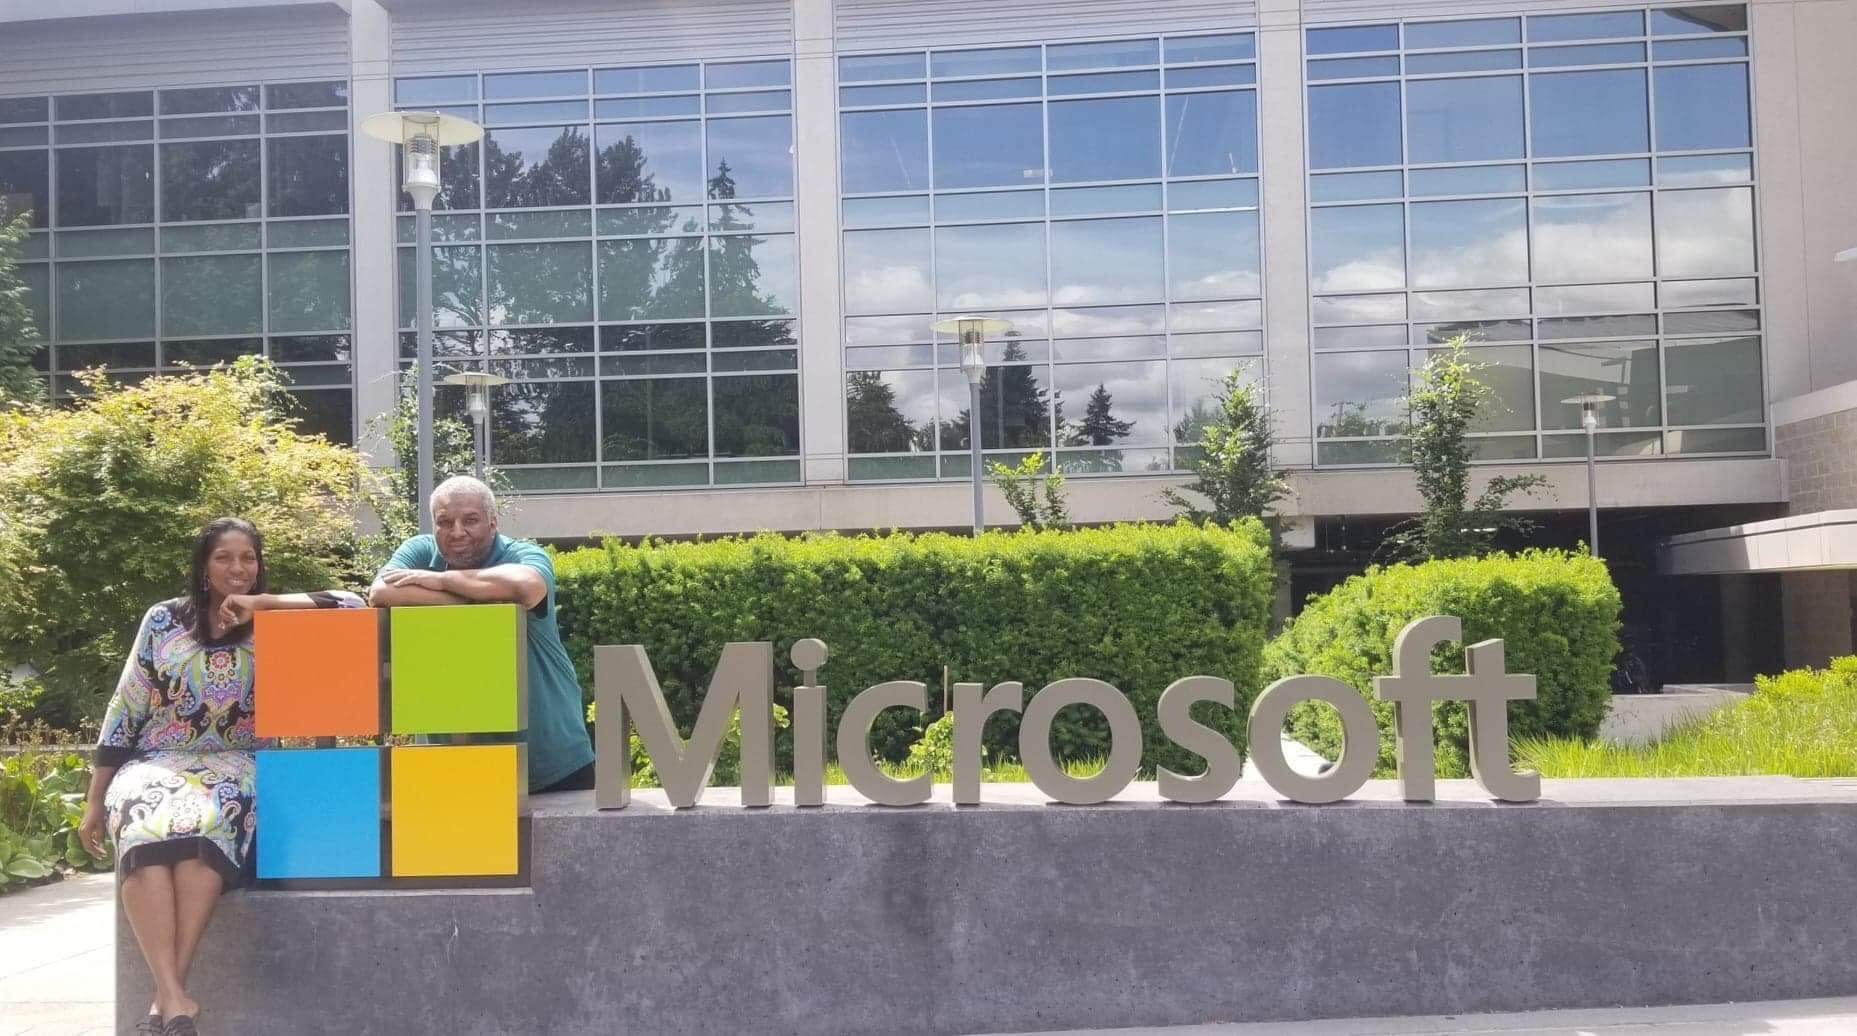 Michael Brown and his wife take the requisite 'first day' photo by the Microsoft logo